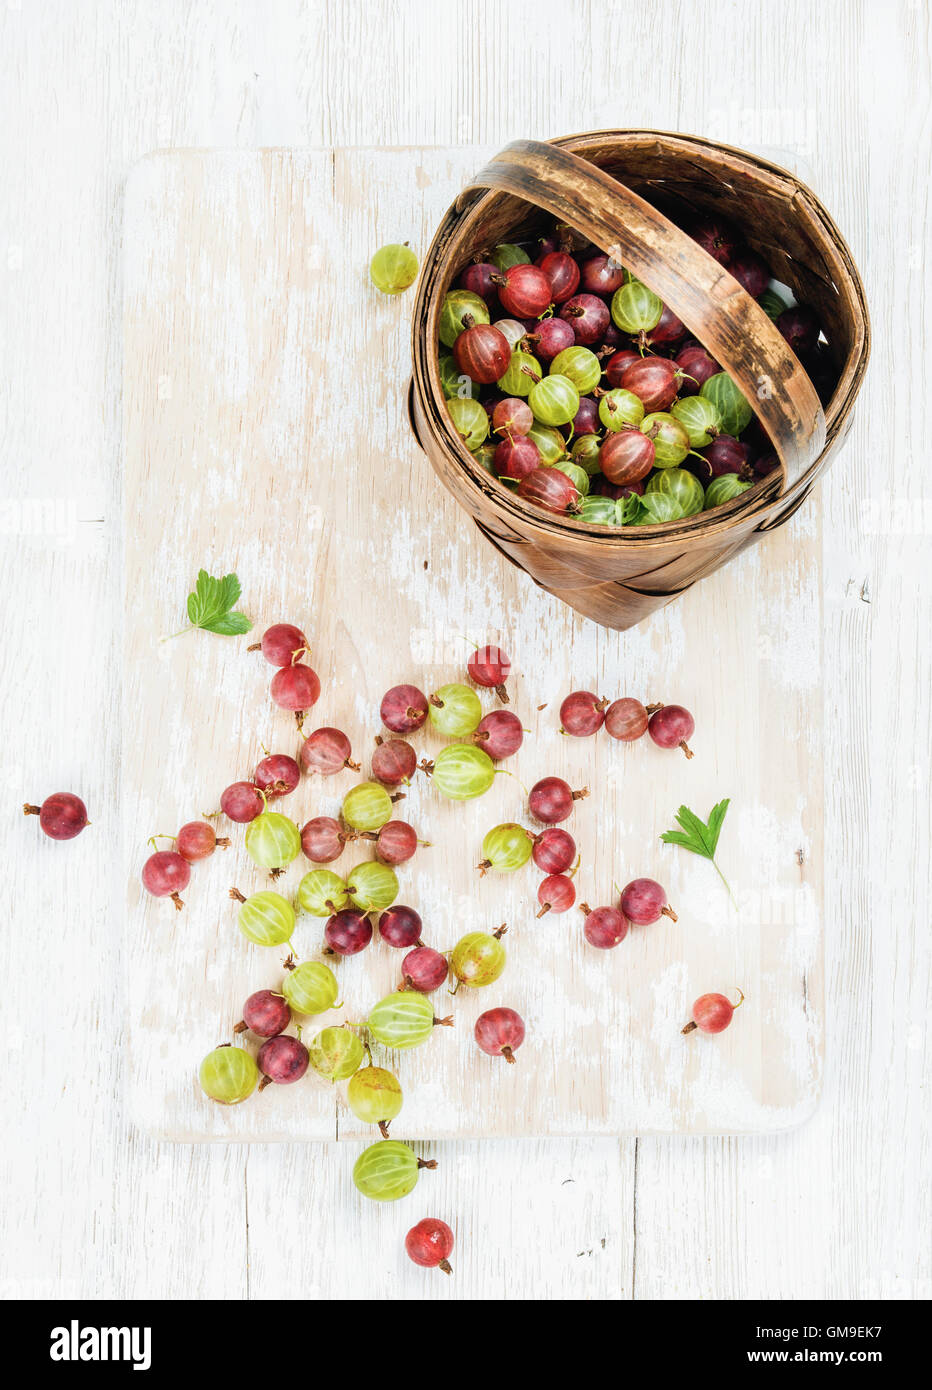 Variety of ripe garden gooseberries in birchbark basket - Stock Image